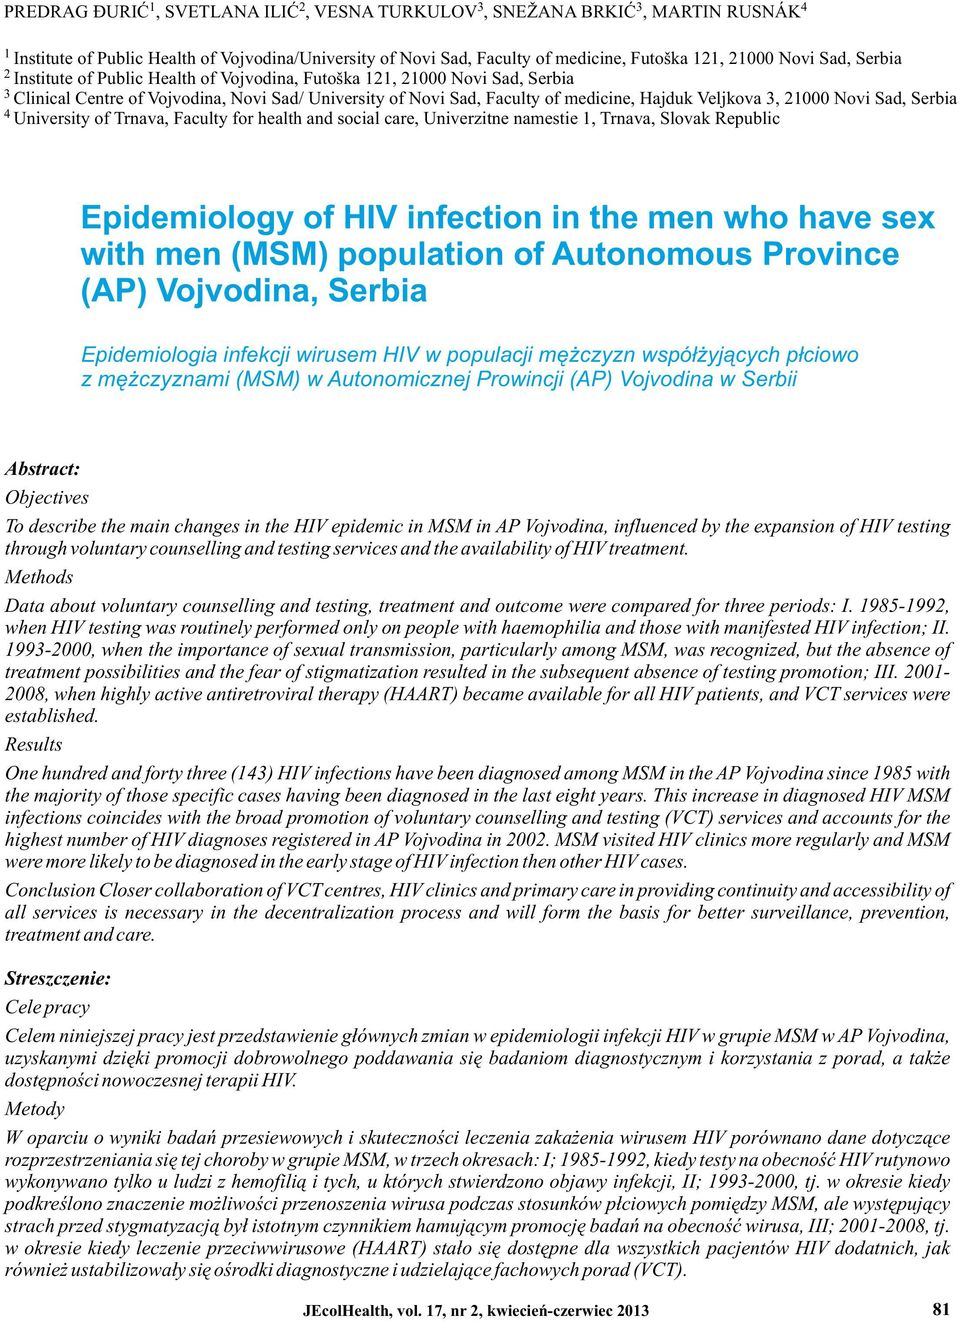 Novi Sad, Serbia 4 University of Trnava, Faculty for health and social care, Univerzitne namestie 1, Trnava, Slovak Republic Epidemiology of HIV infection in the men who have sex with men (MSM)